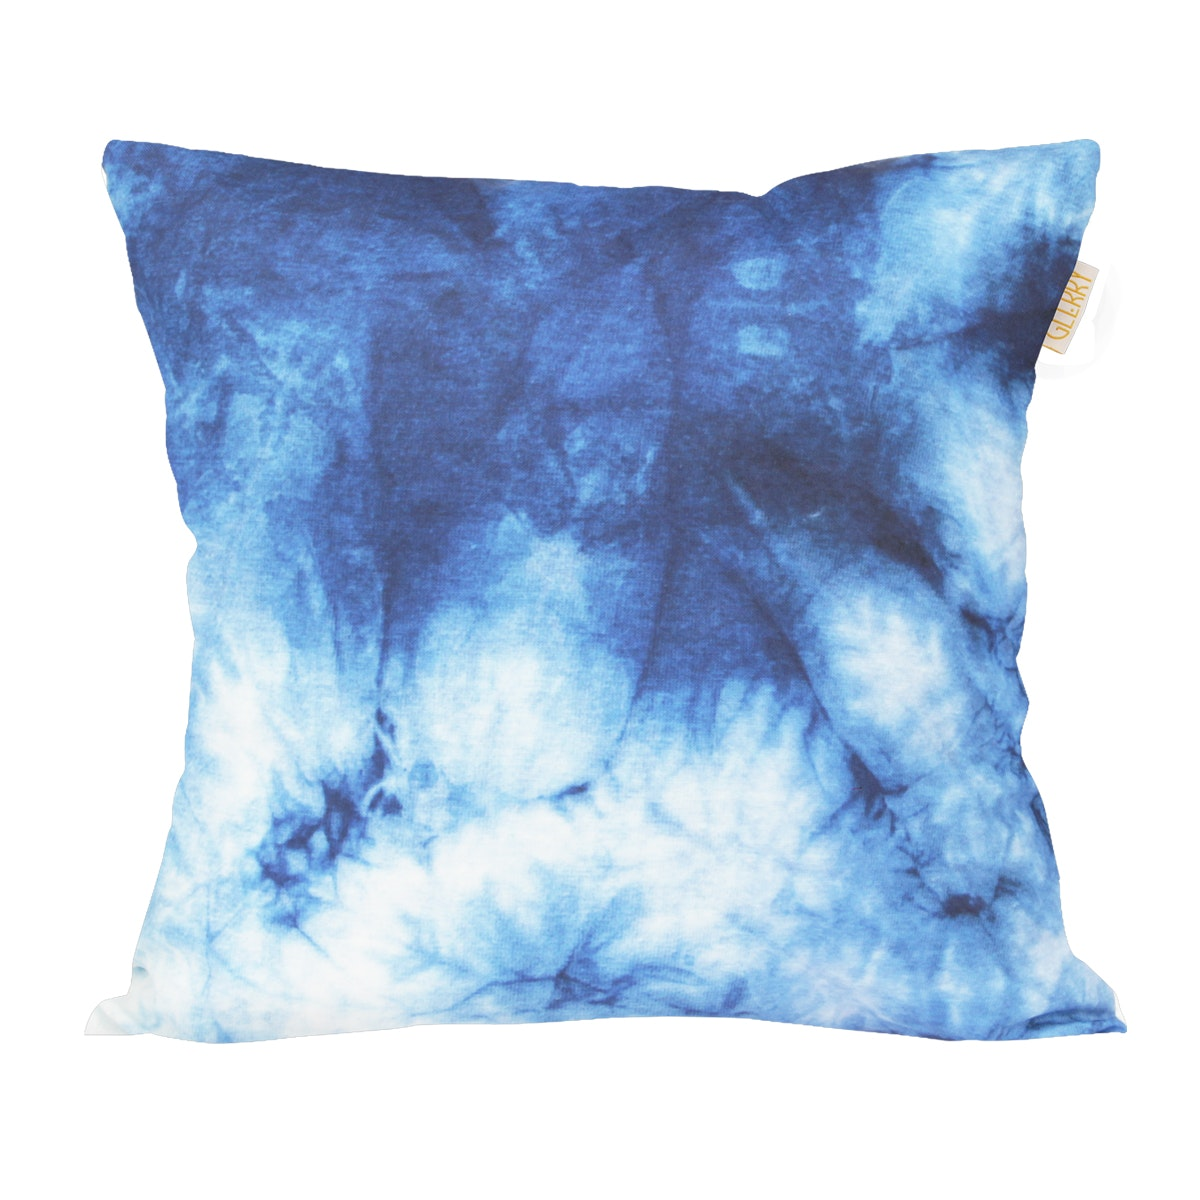 Glerry Home Decor Blue My Mind Cushion 40x40cm